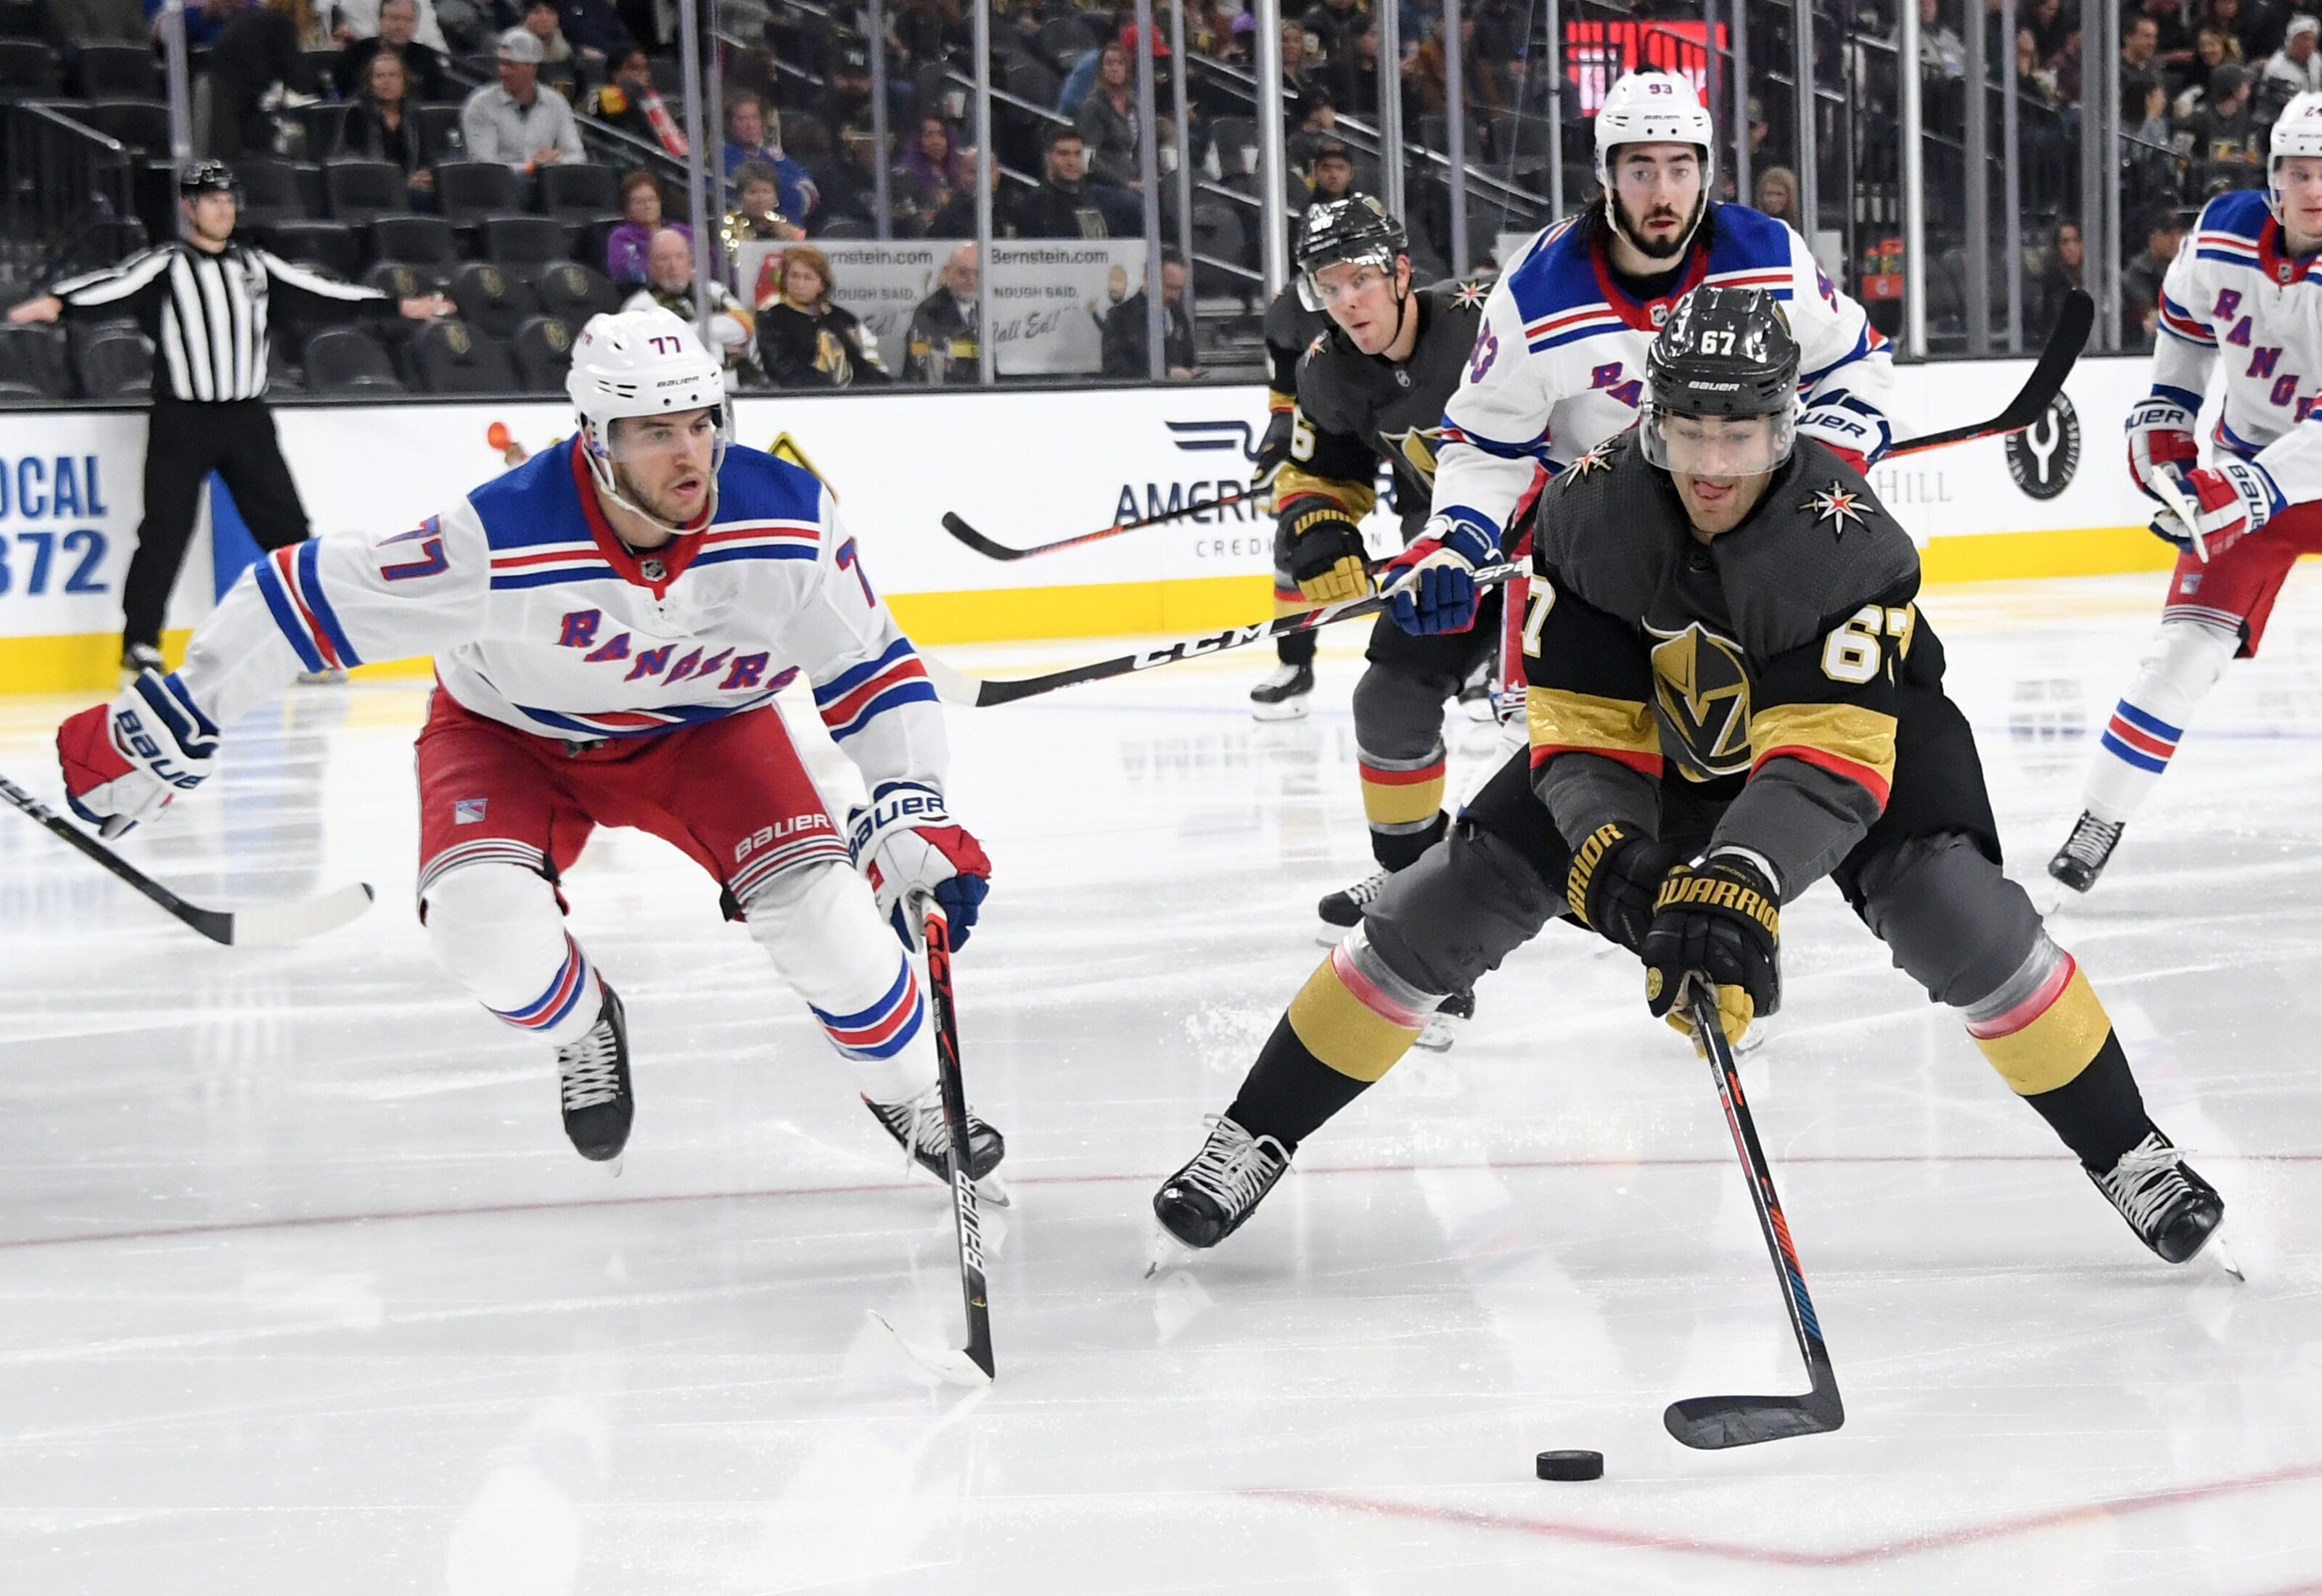 Vegas Golden Knights: 3 takeaways from blowout loss to Rangers